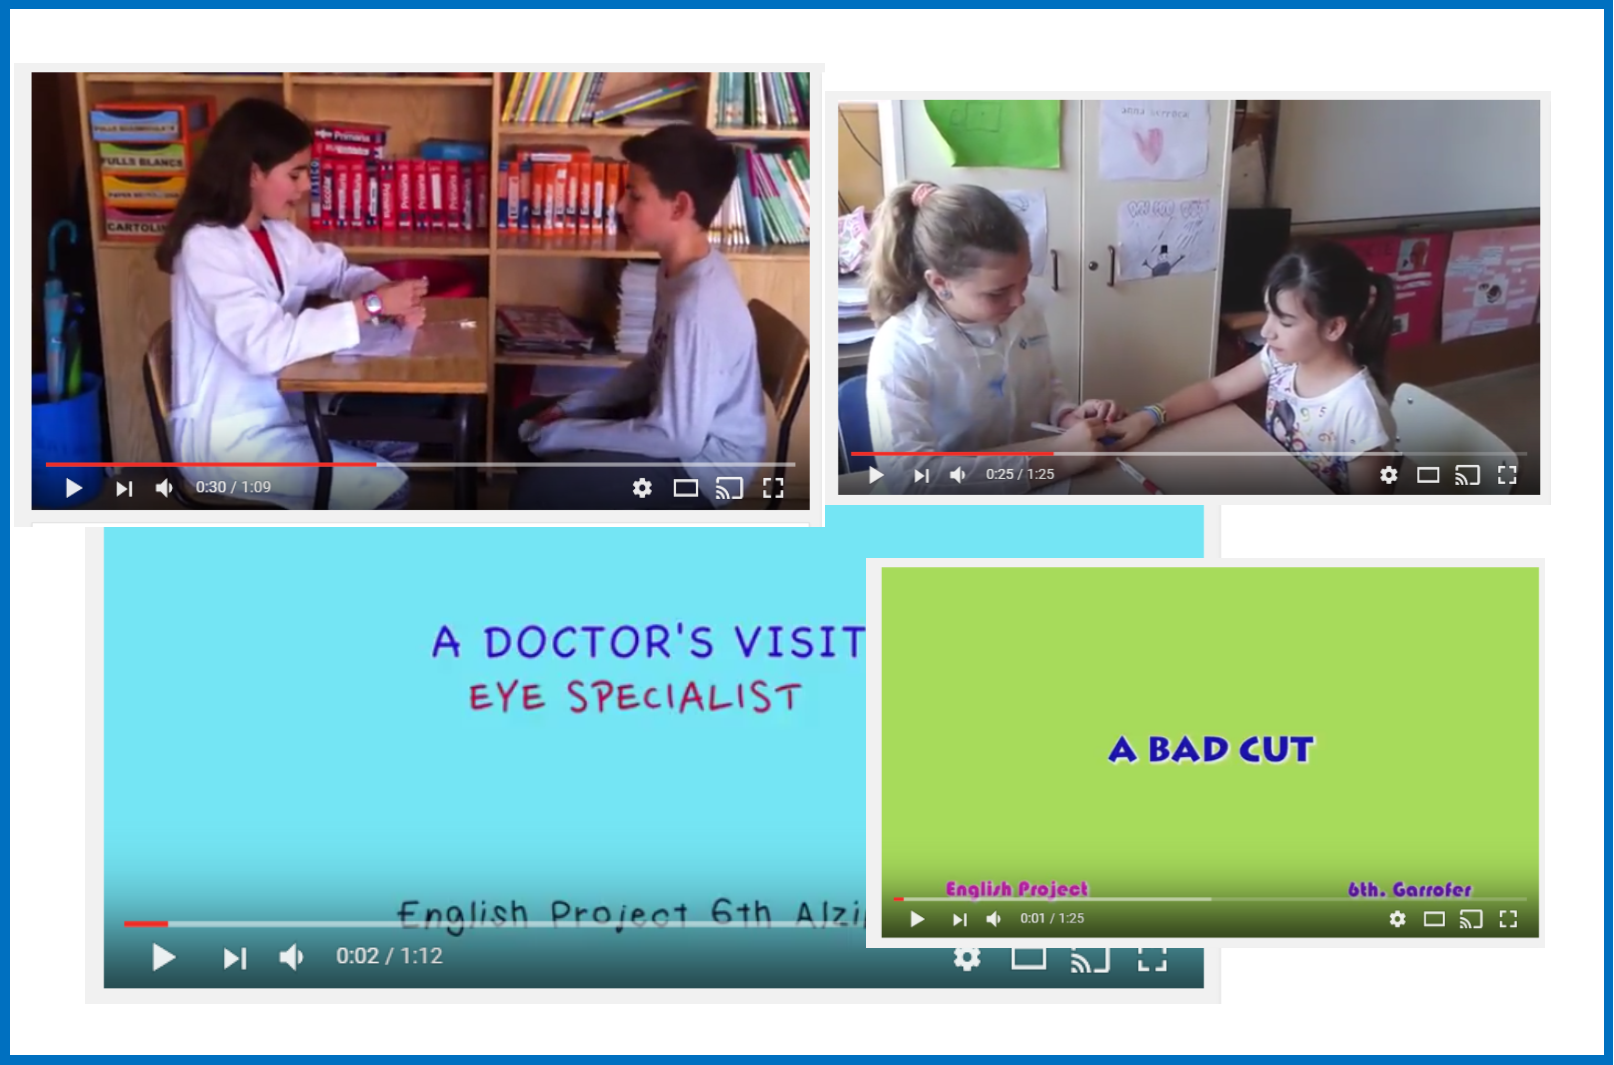 A VISIT TO THE DOCTOR6th grade Alzina and Garrofer